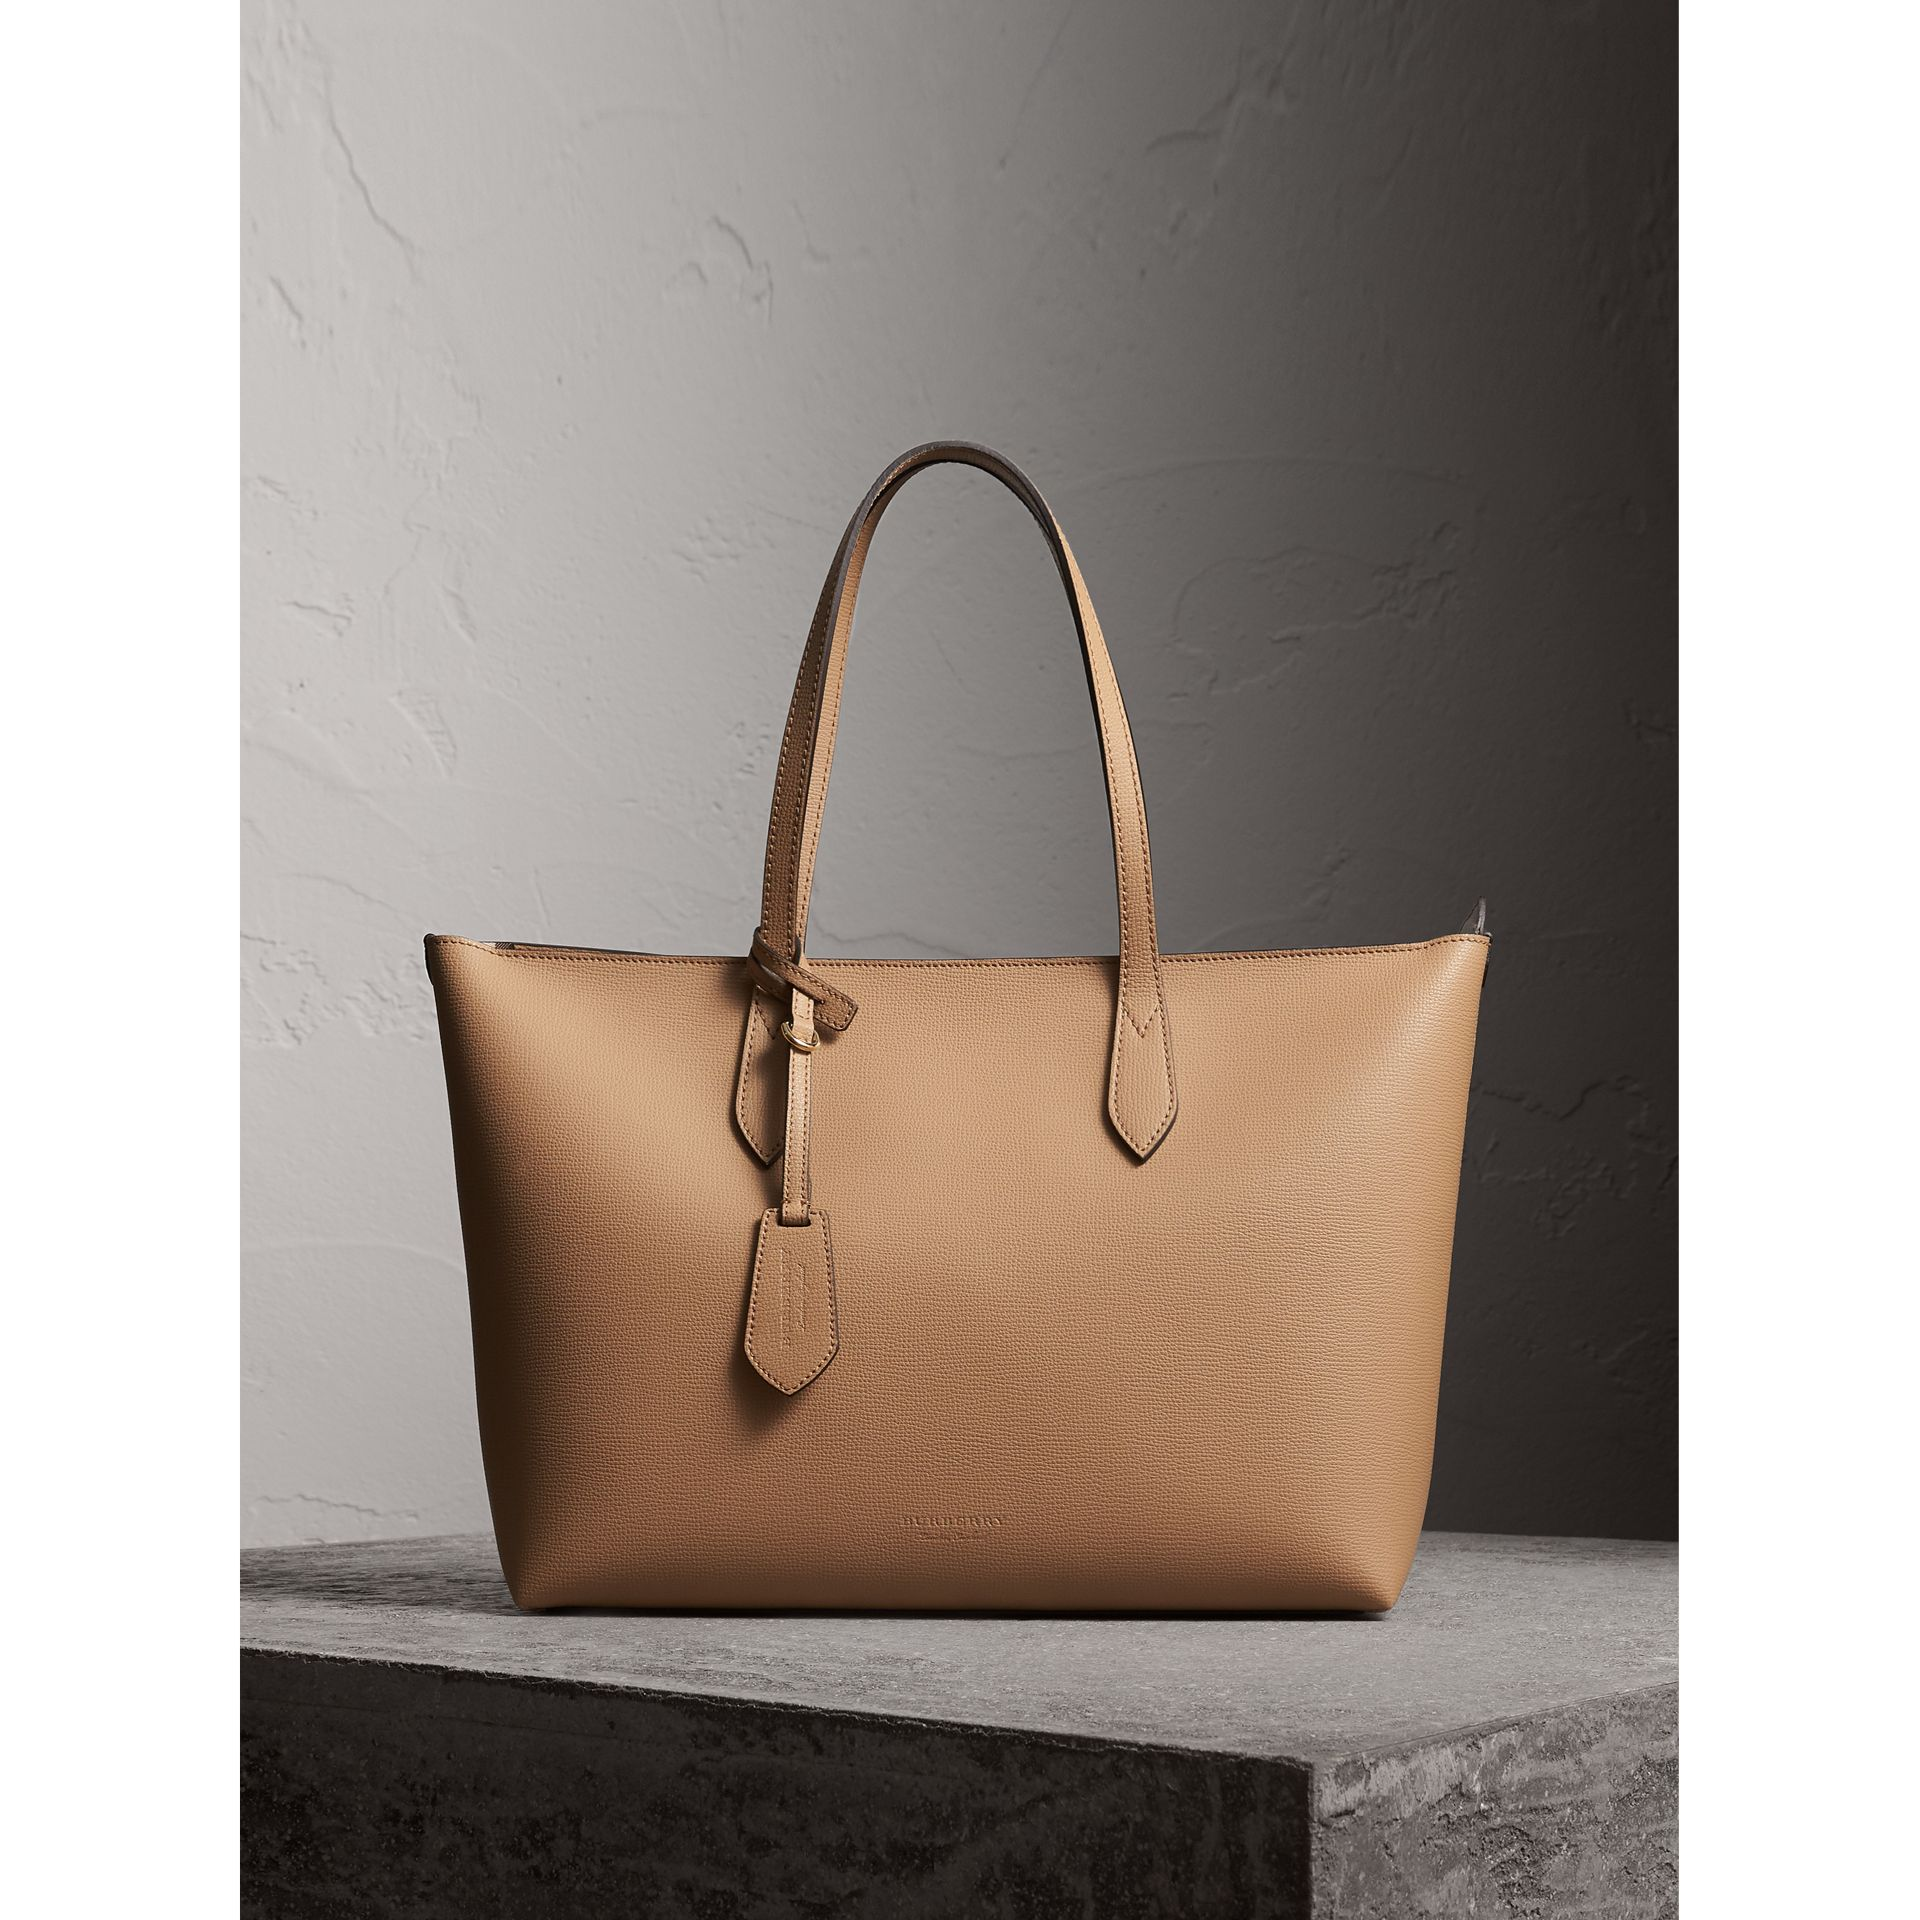 Medium Coated Leather Tote in Mid Camel - Women | Burberry - gallery image 1